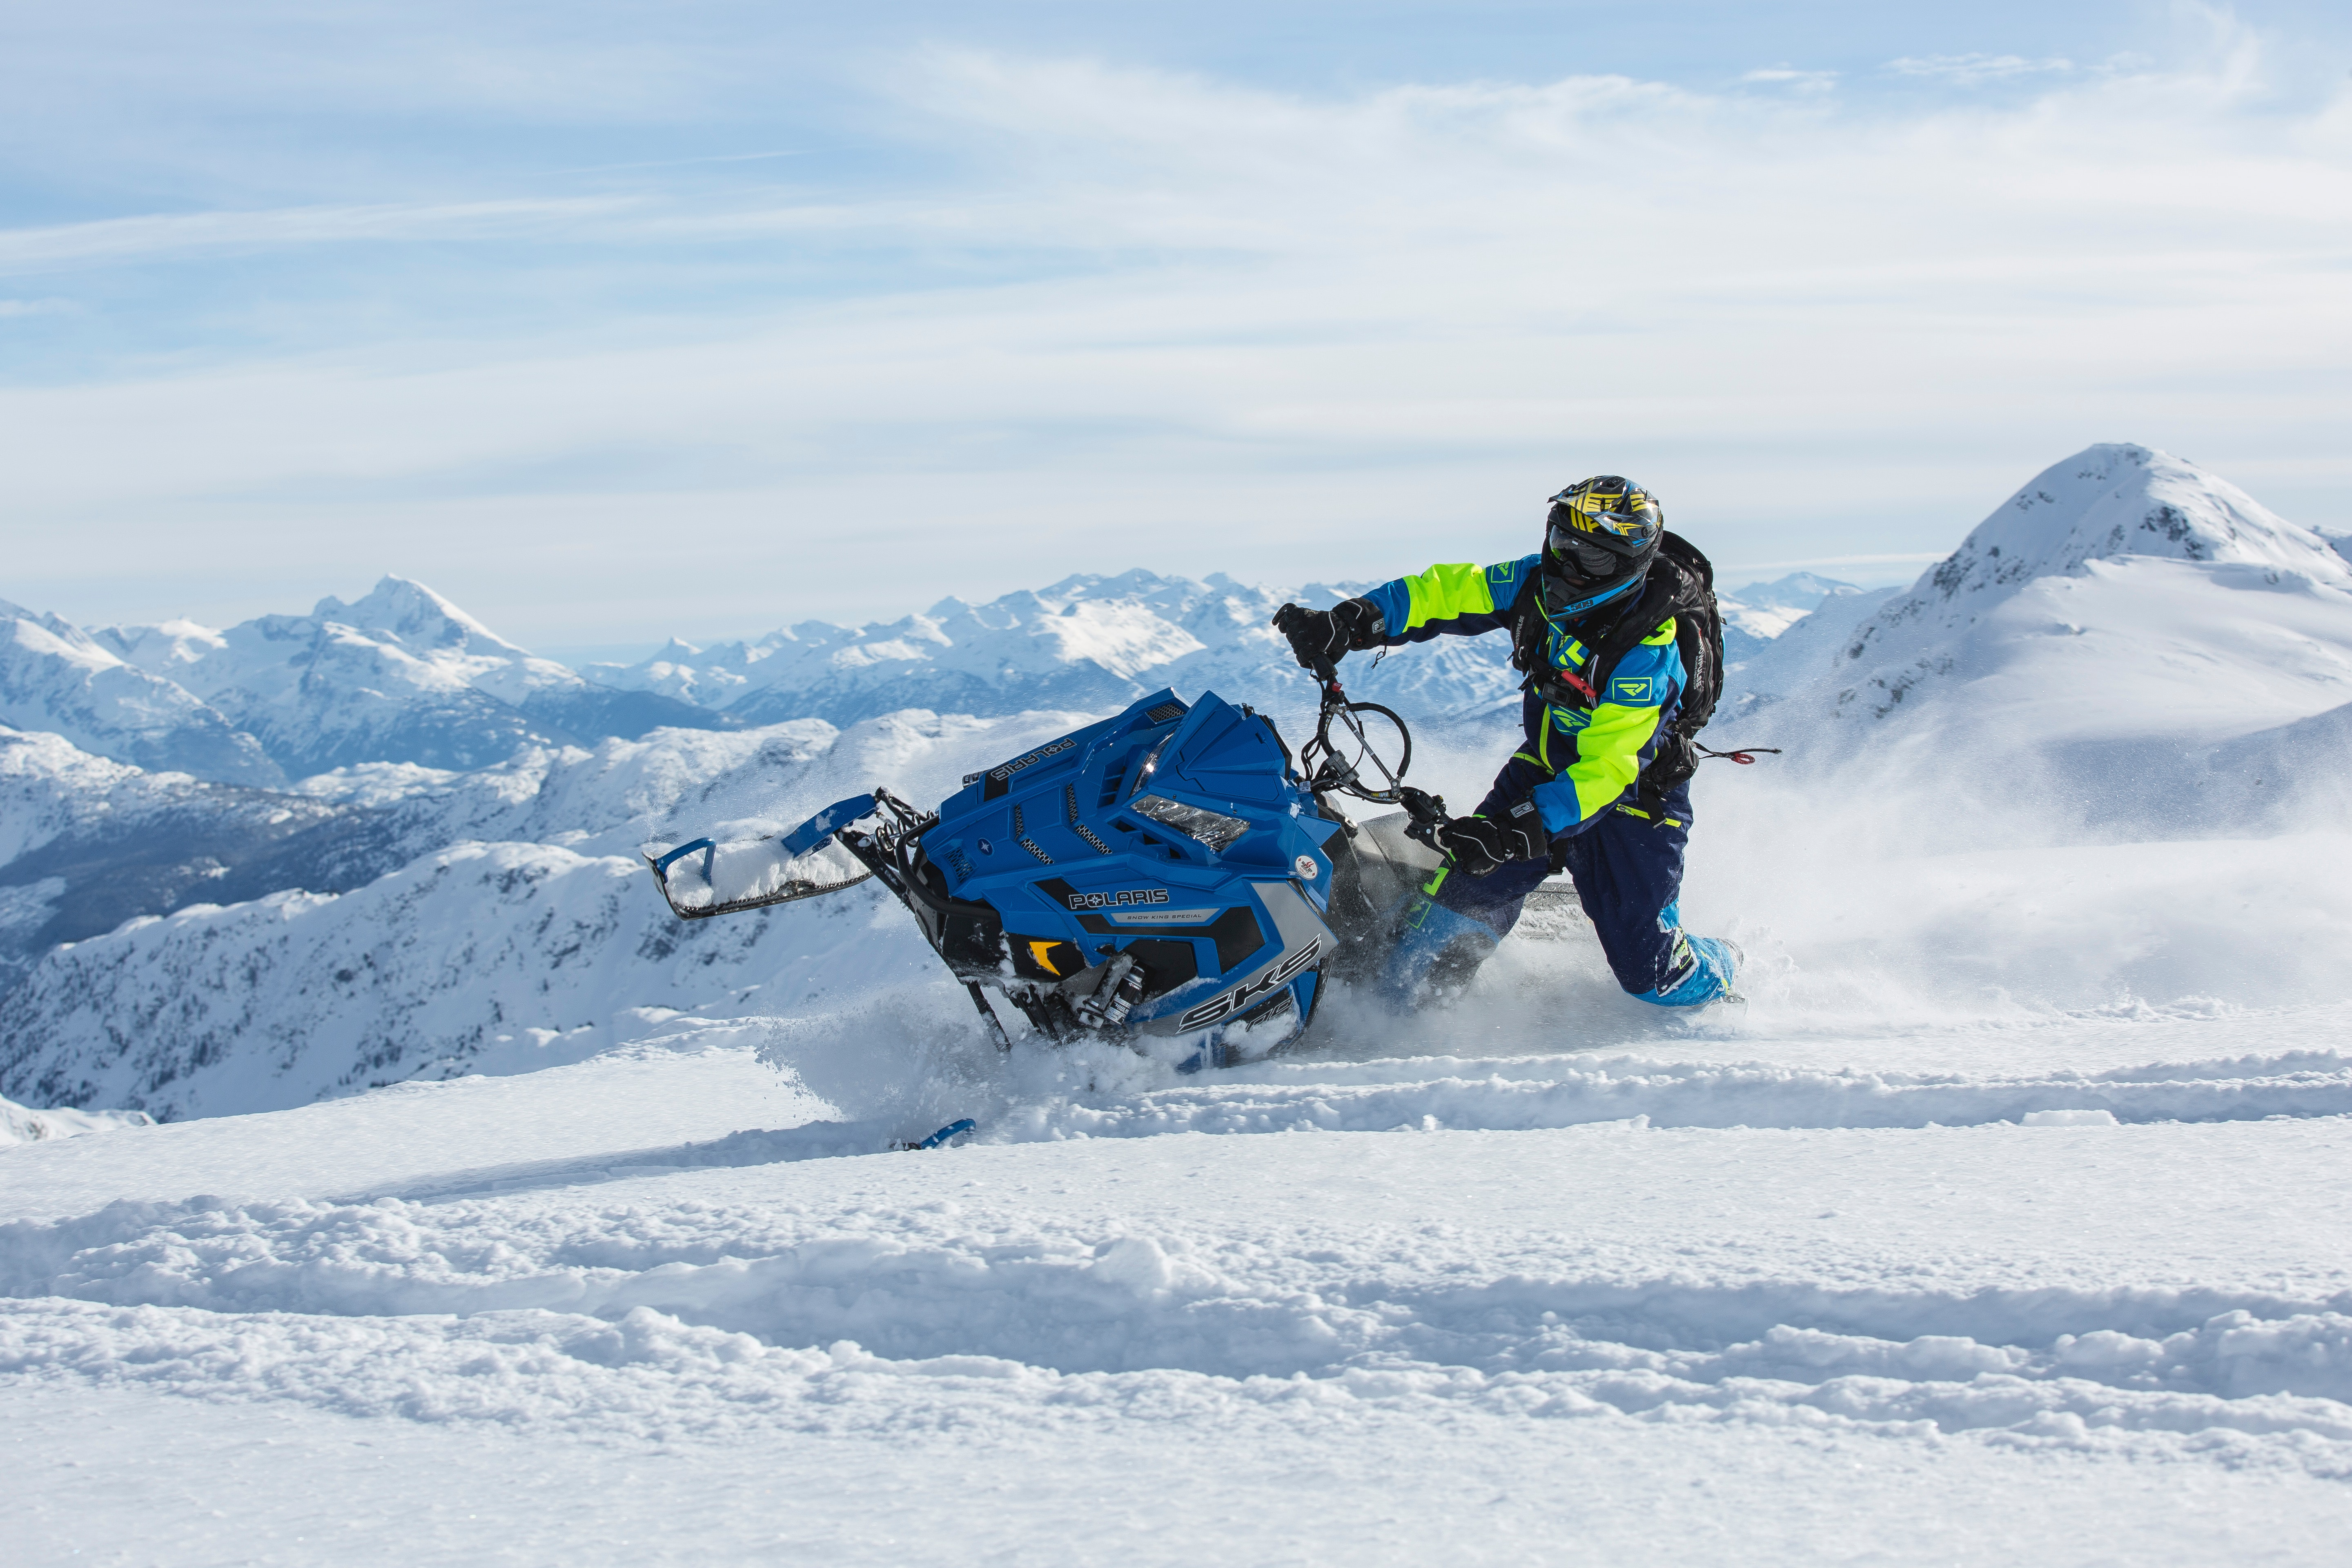 Man Riding Blue Snow Ski Scooter, Action, Snow capped mountain, Recreation, Resort, HQ Photo